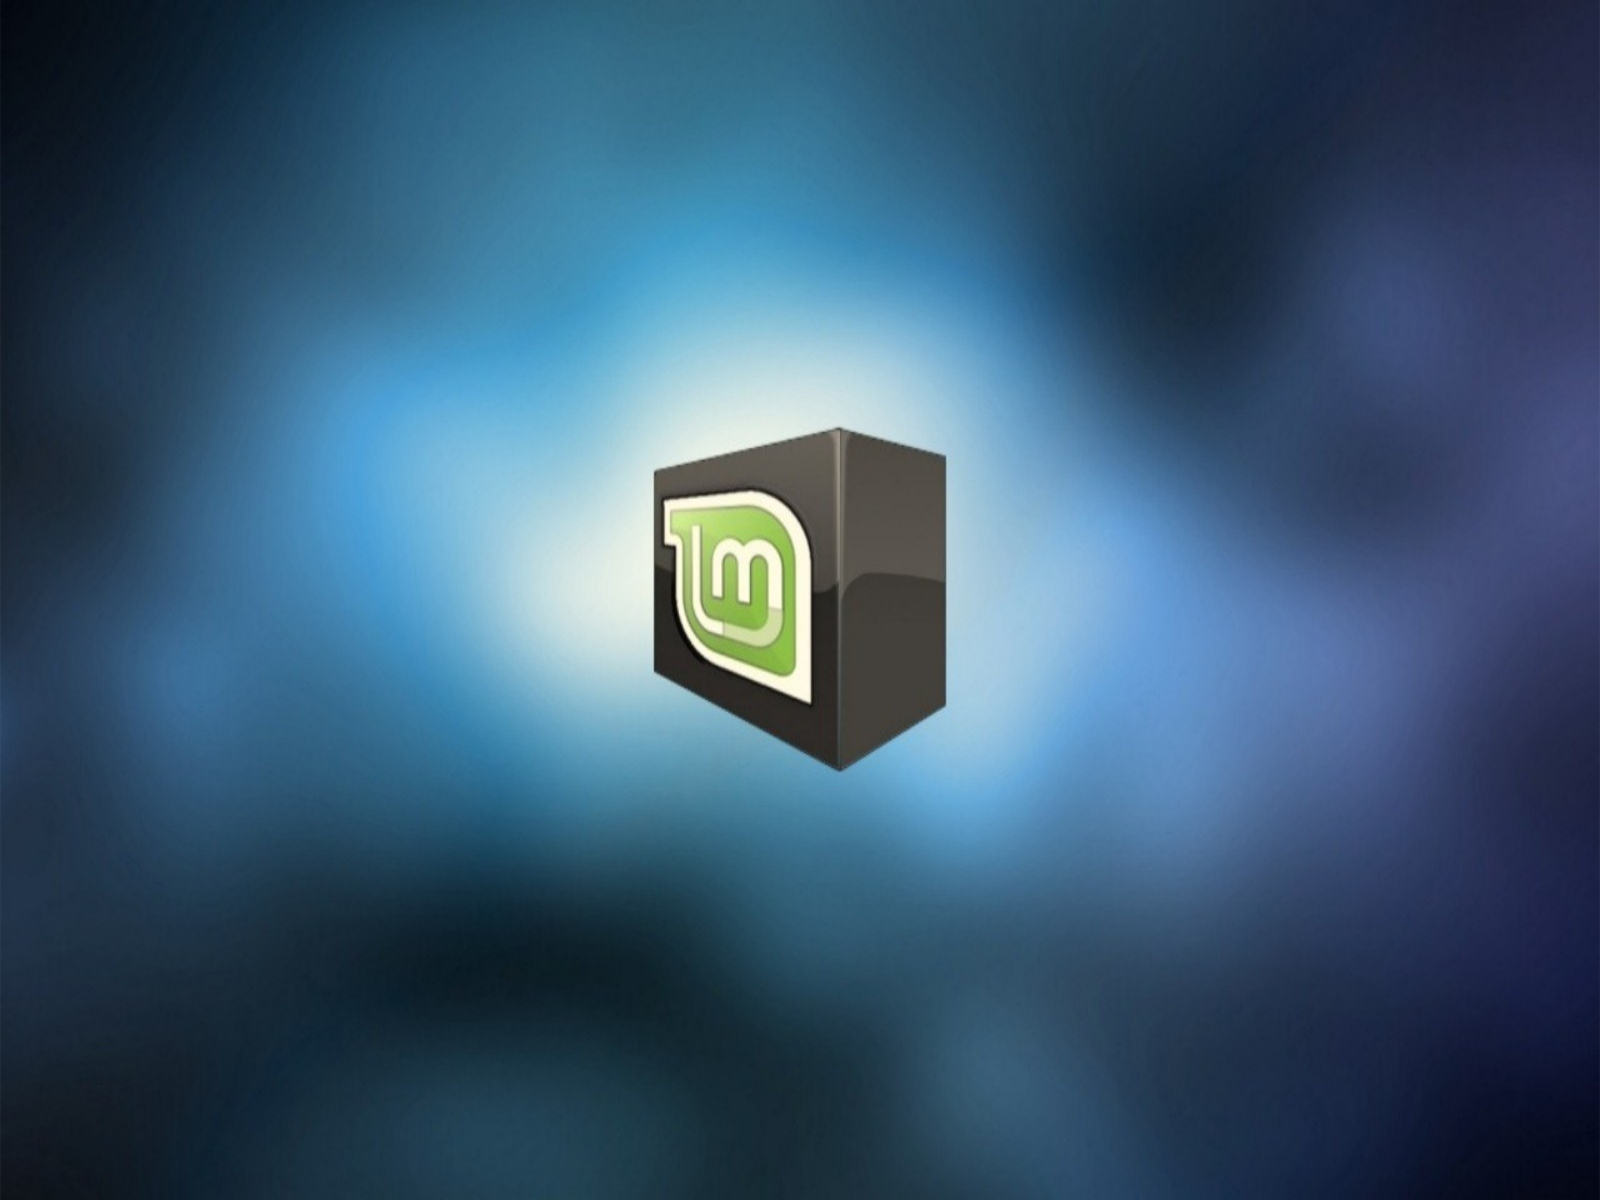 Mint Linux Background Linux Mint Box Wide Wallpapers   1600x1200 1600x1200